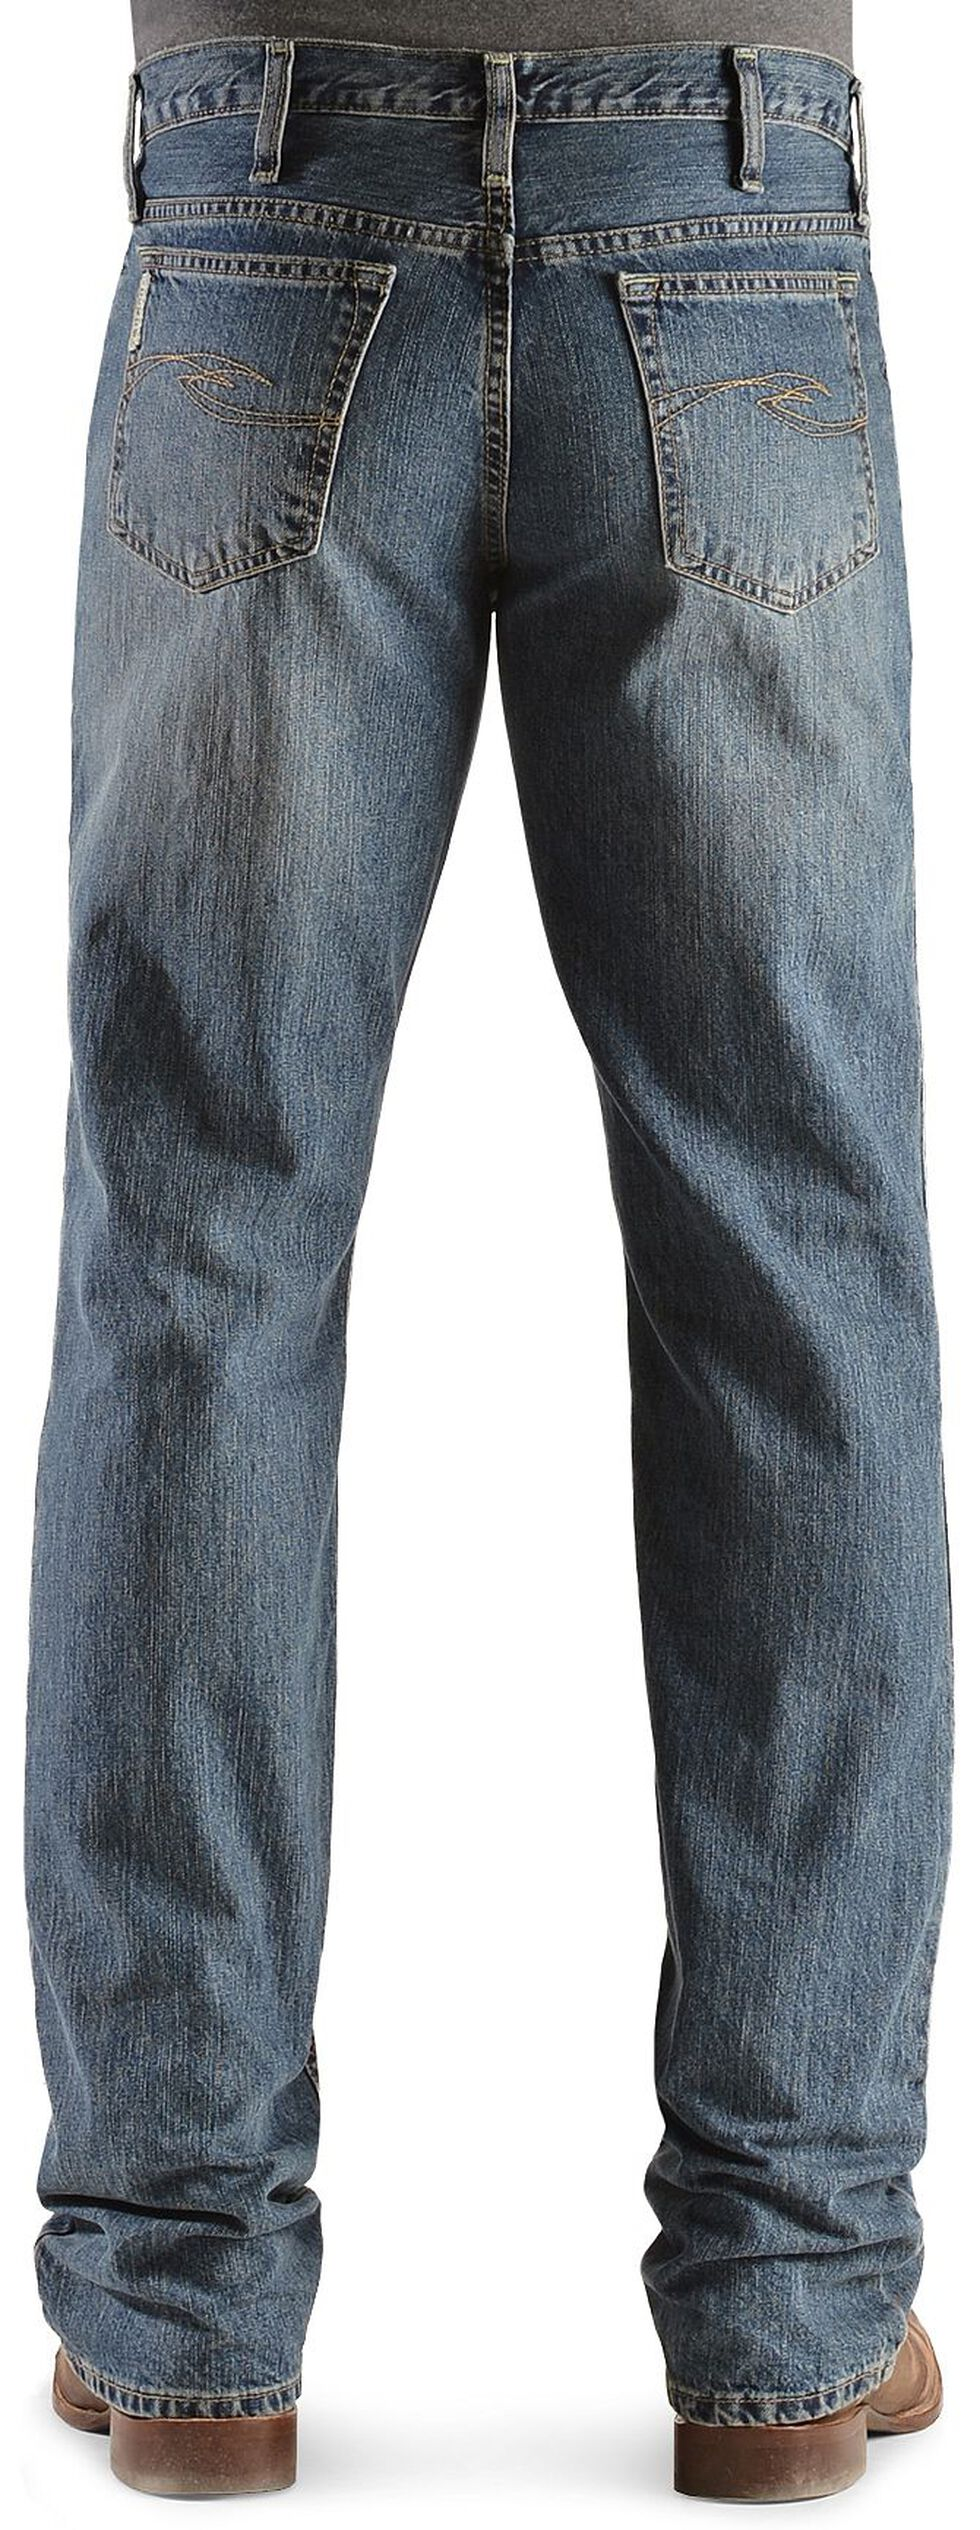 Cinch Dooley Relaxed Fit Jeans, Indigo, hi-res